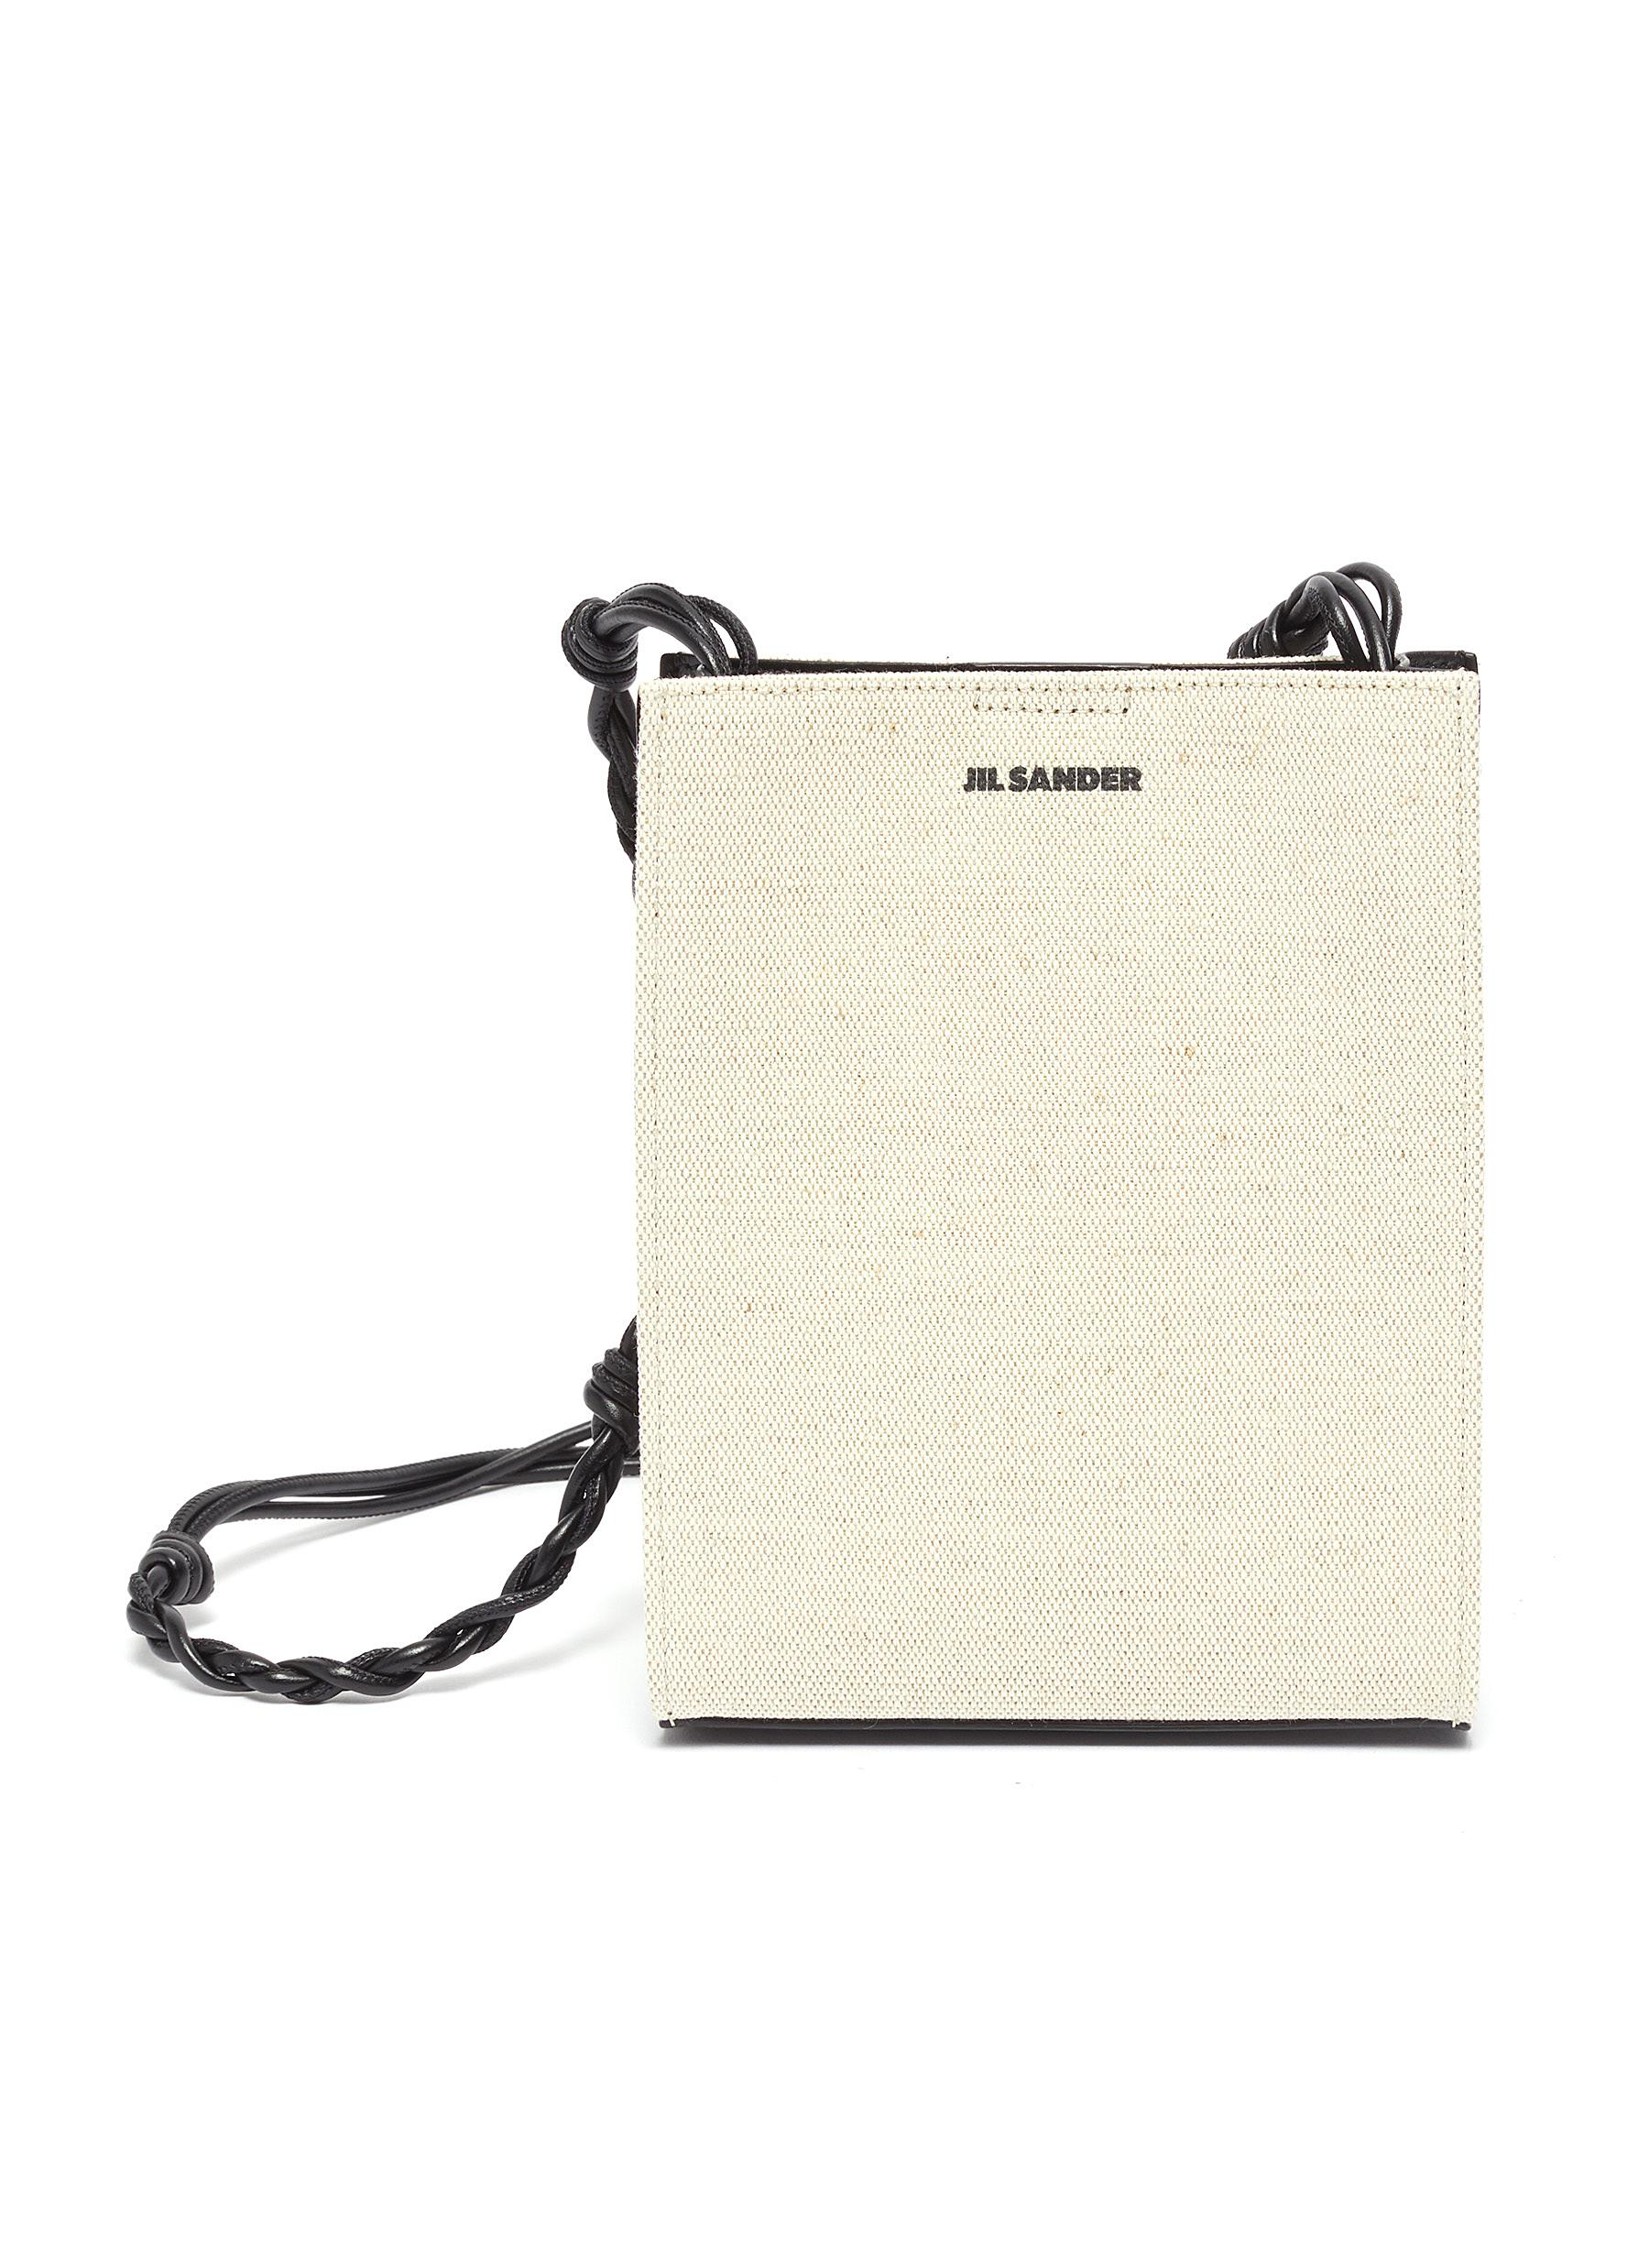 'Tangle' braided leather shoulder strap canvas small crossbody bag